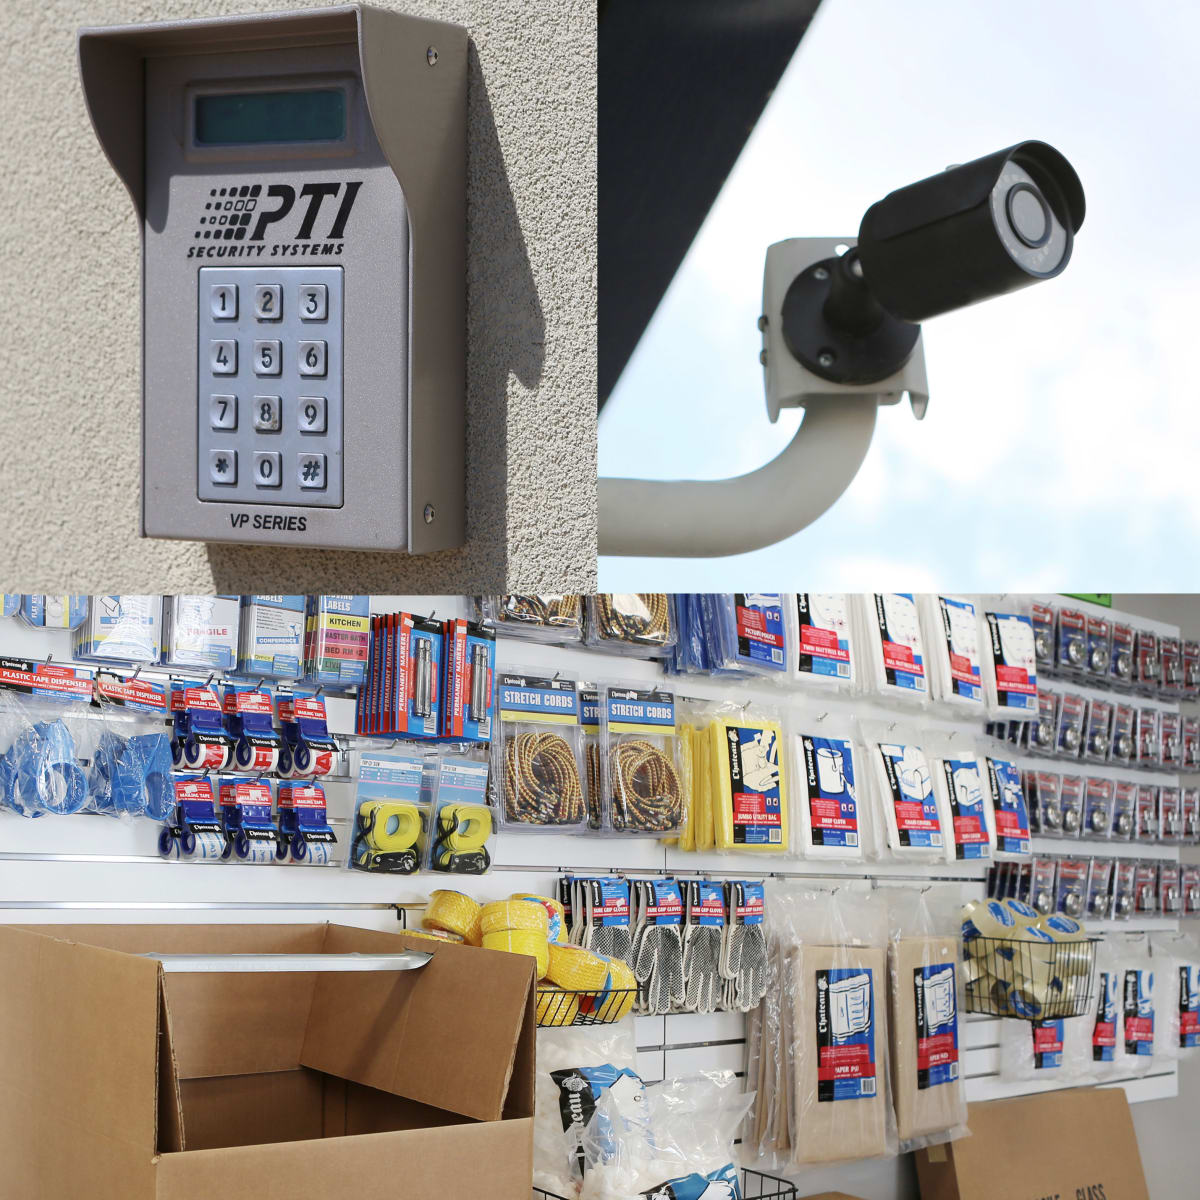 We provide 24 hour security monitoring and sell various moving and packing supplies at Clover Basin Self-Storage in Longmont, Colorado